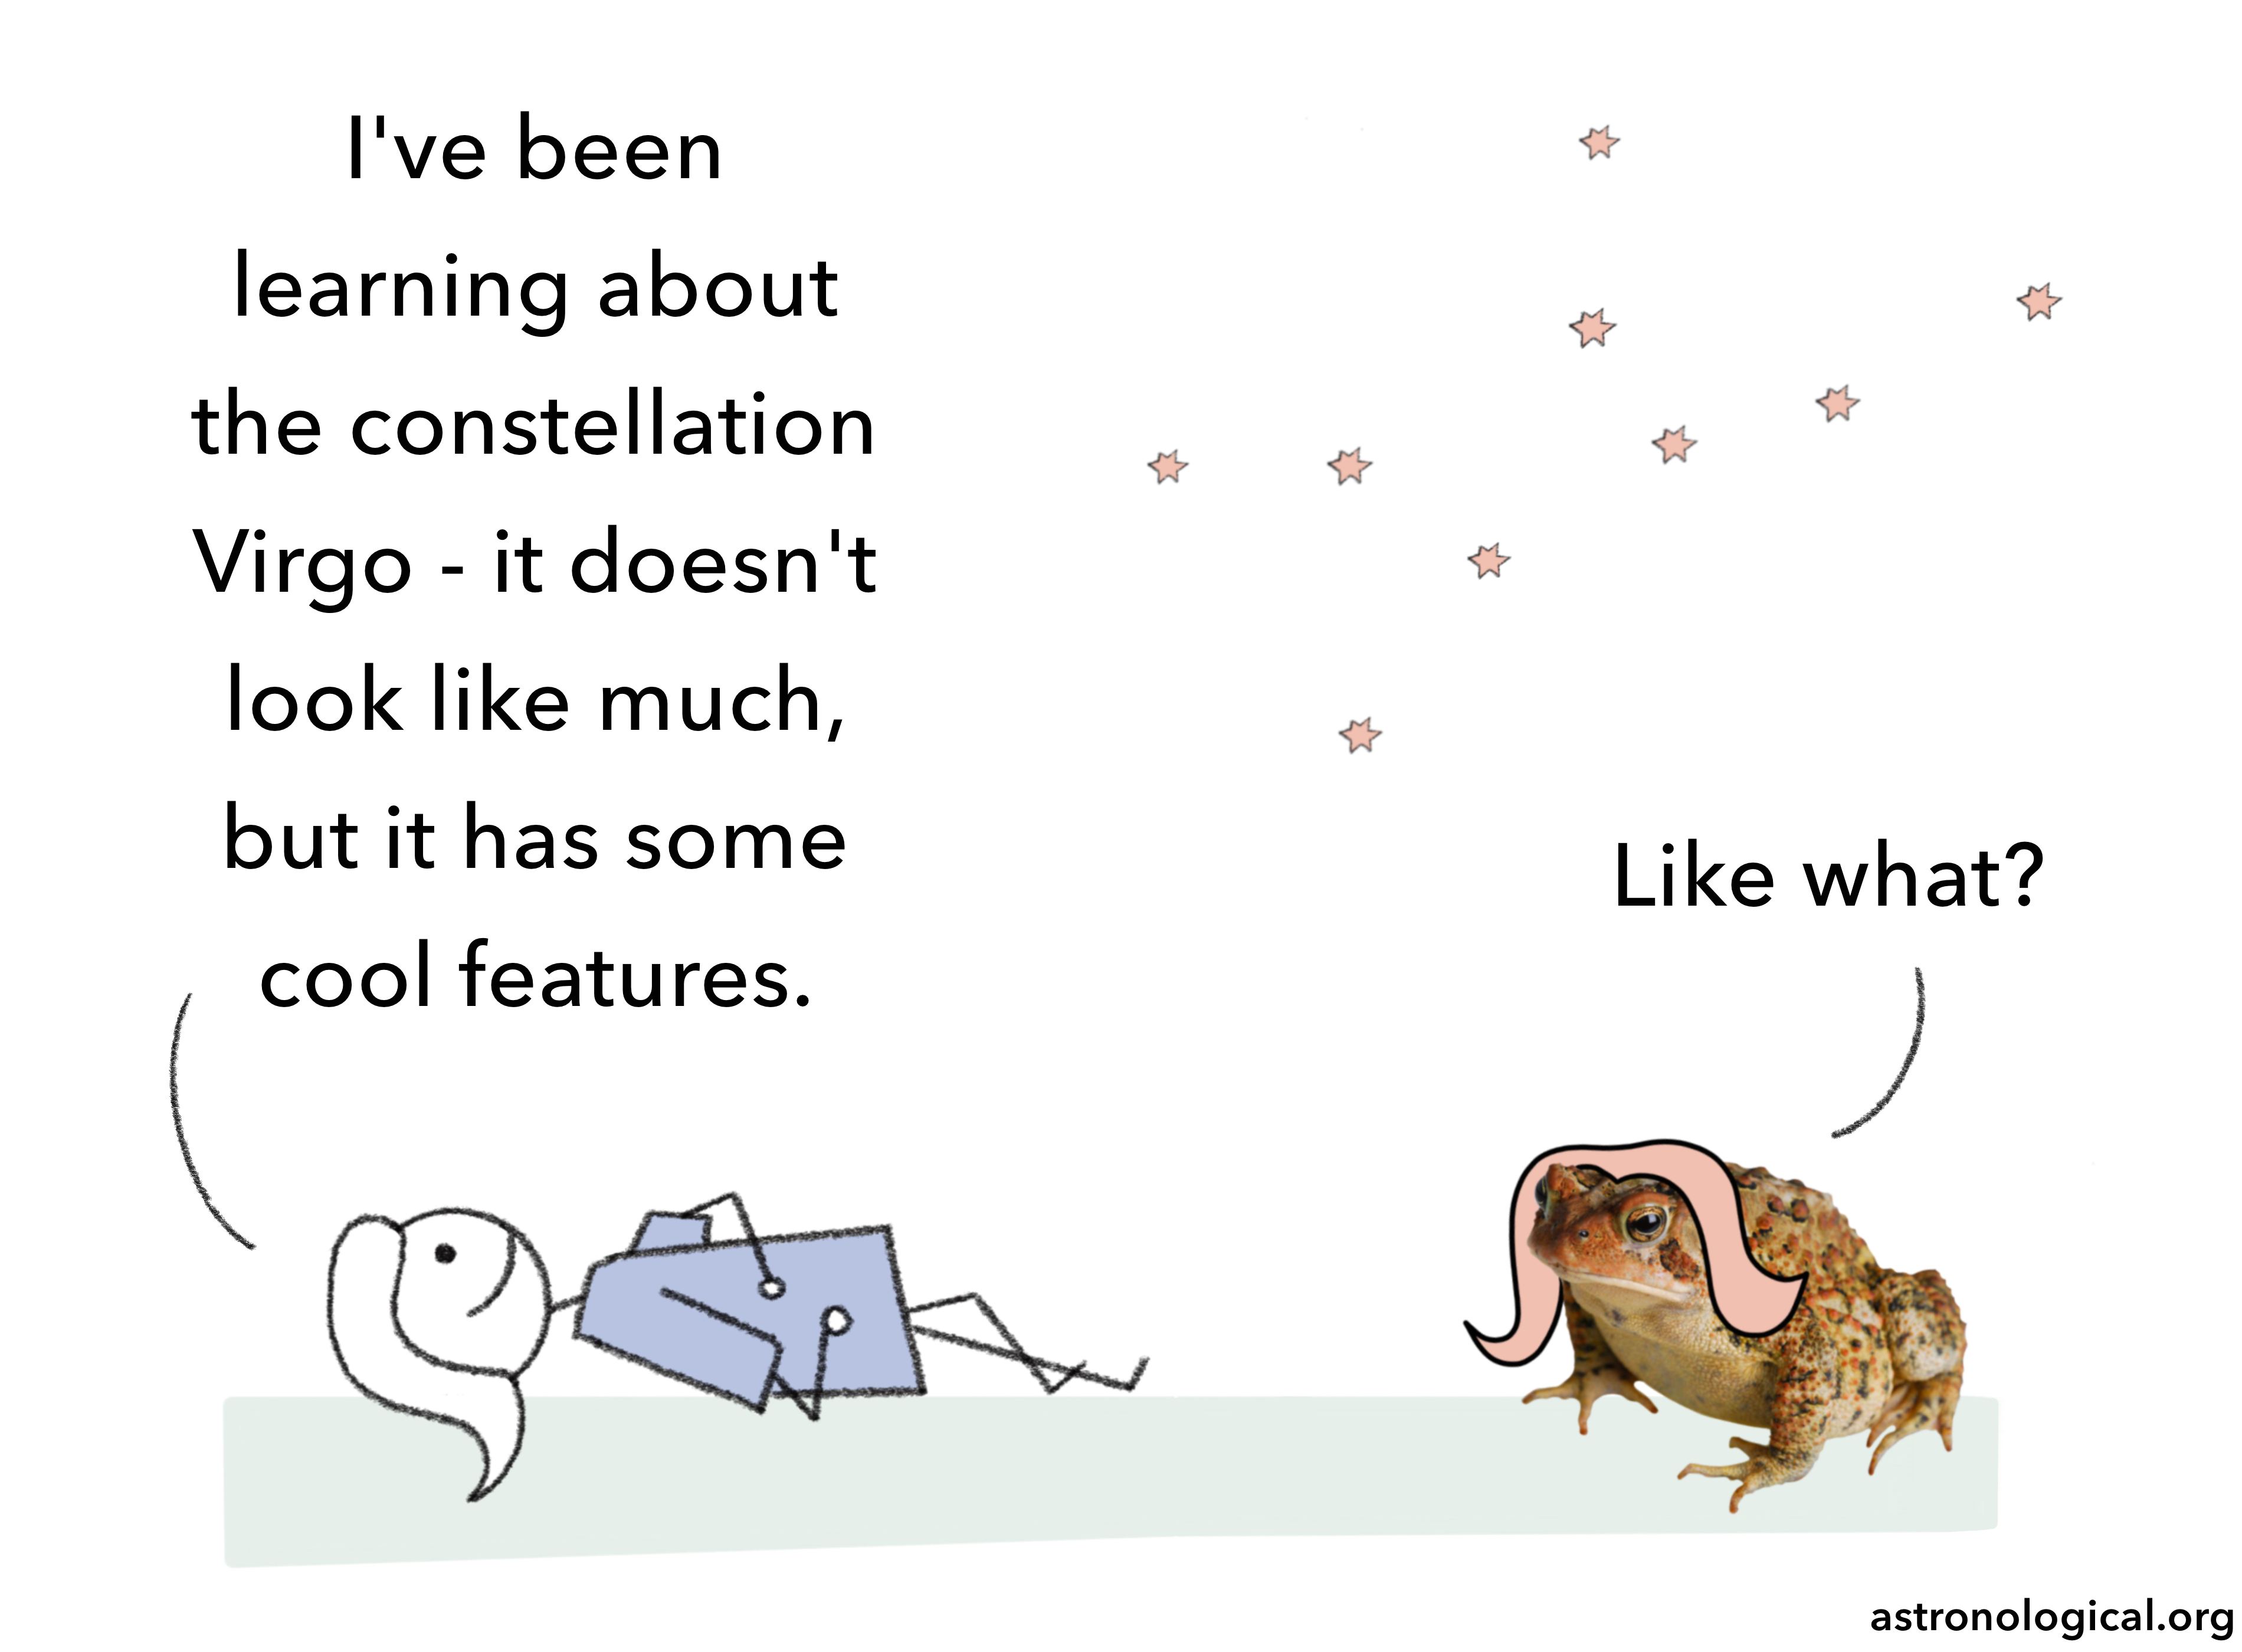 A stick figure girl is lying down looking up at the Virgo constellation and talking to a warty toad wearing a wig. She says: I've been learning about the constellation Virgo - it doesn't look like much, but it has some cool features.  The toad replies: Like what?